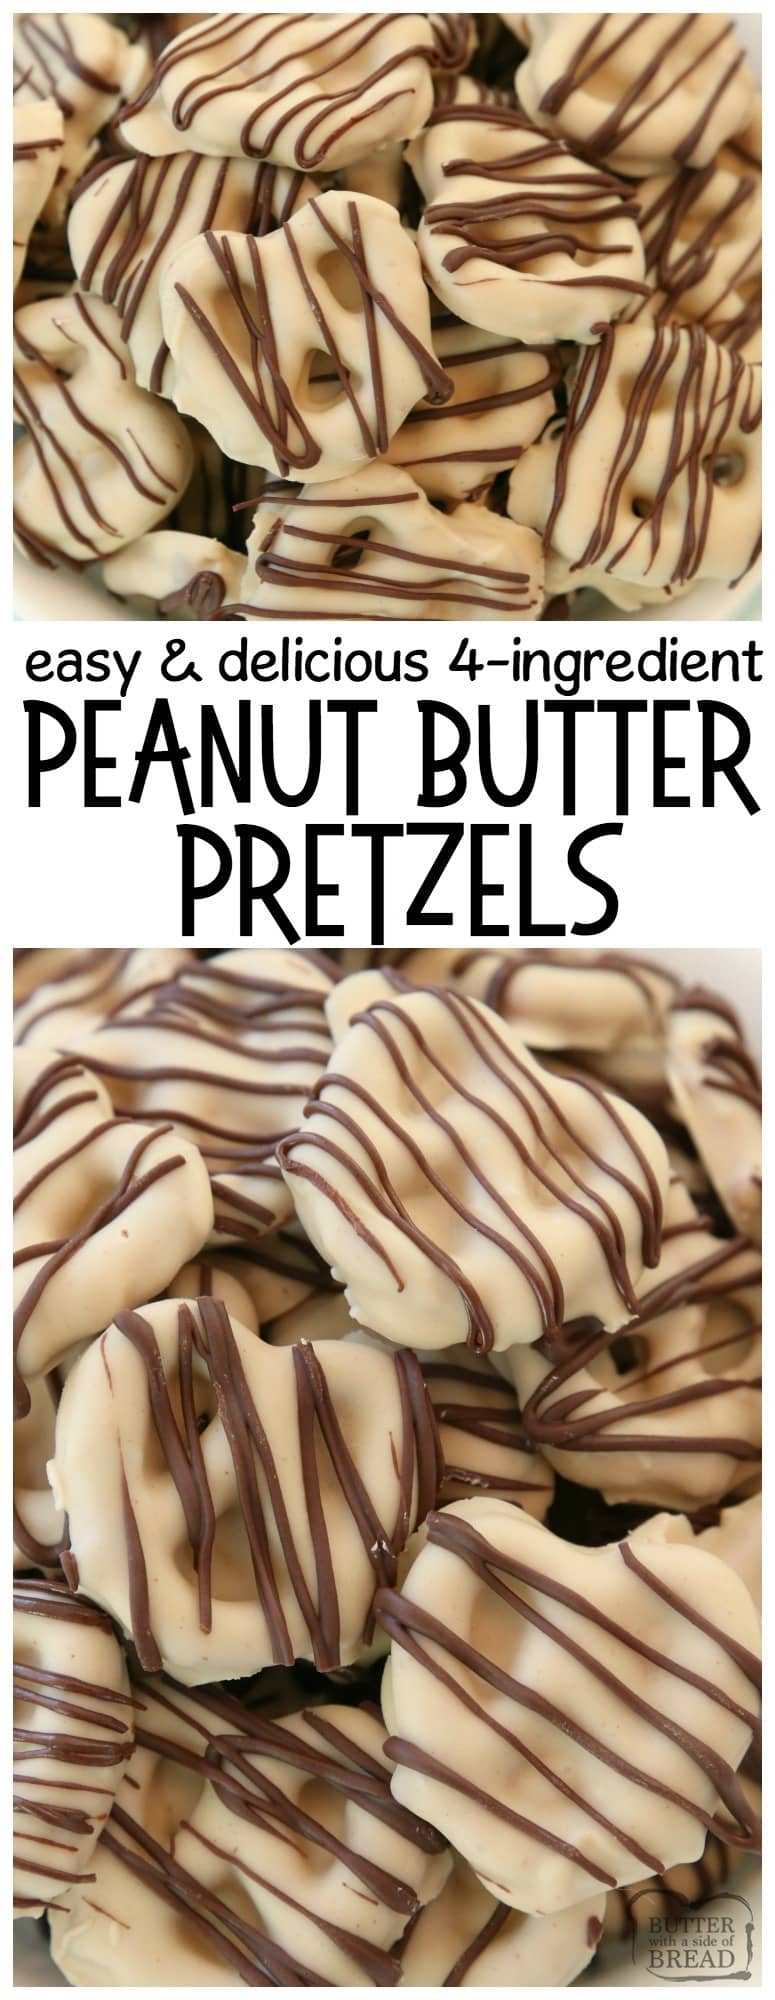 Peanut Butter Chocolate Pretzels are made with 4 simple ingredients and they're completely amazing! Easy treats made with peanut butter, pretzels, and chocolate & perfect for anytime.